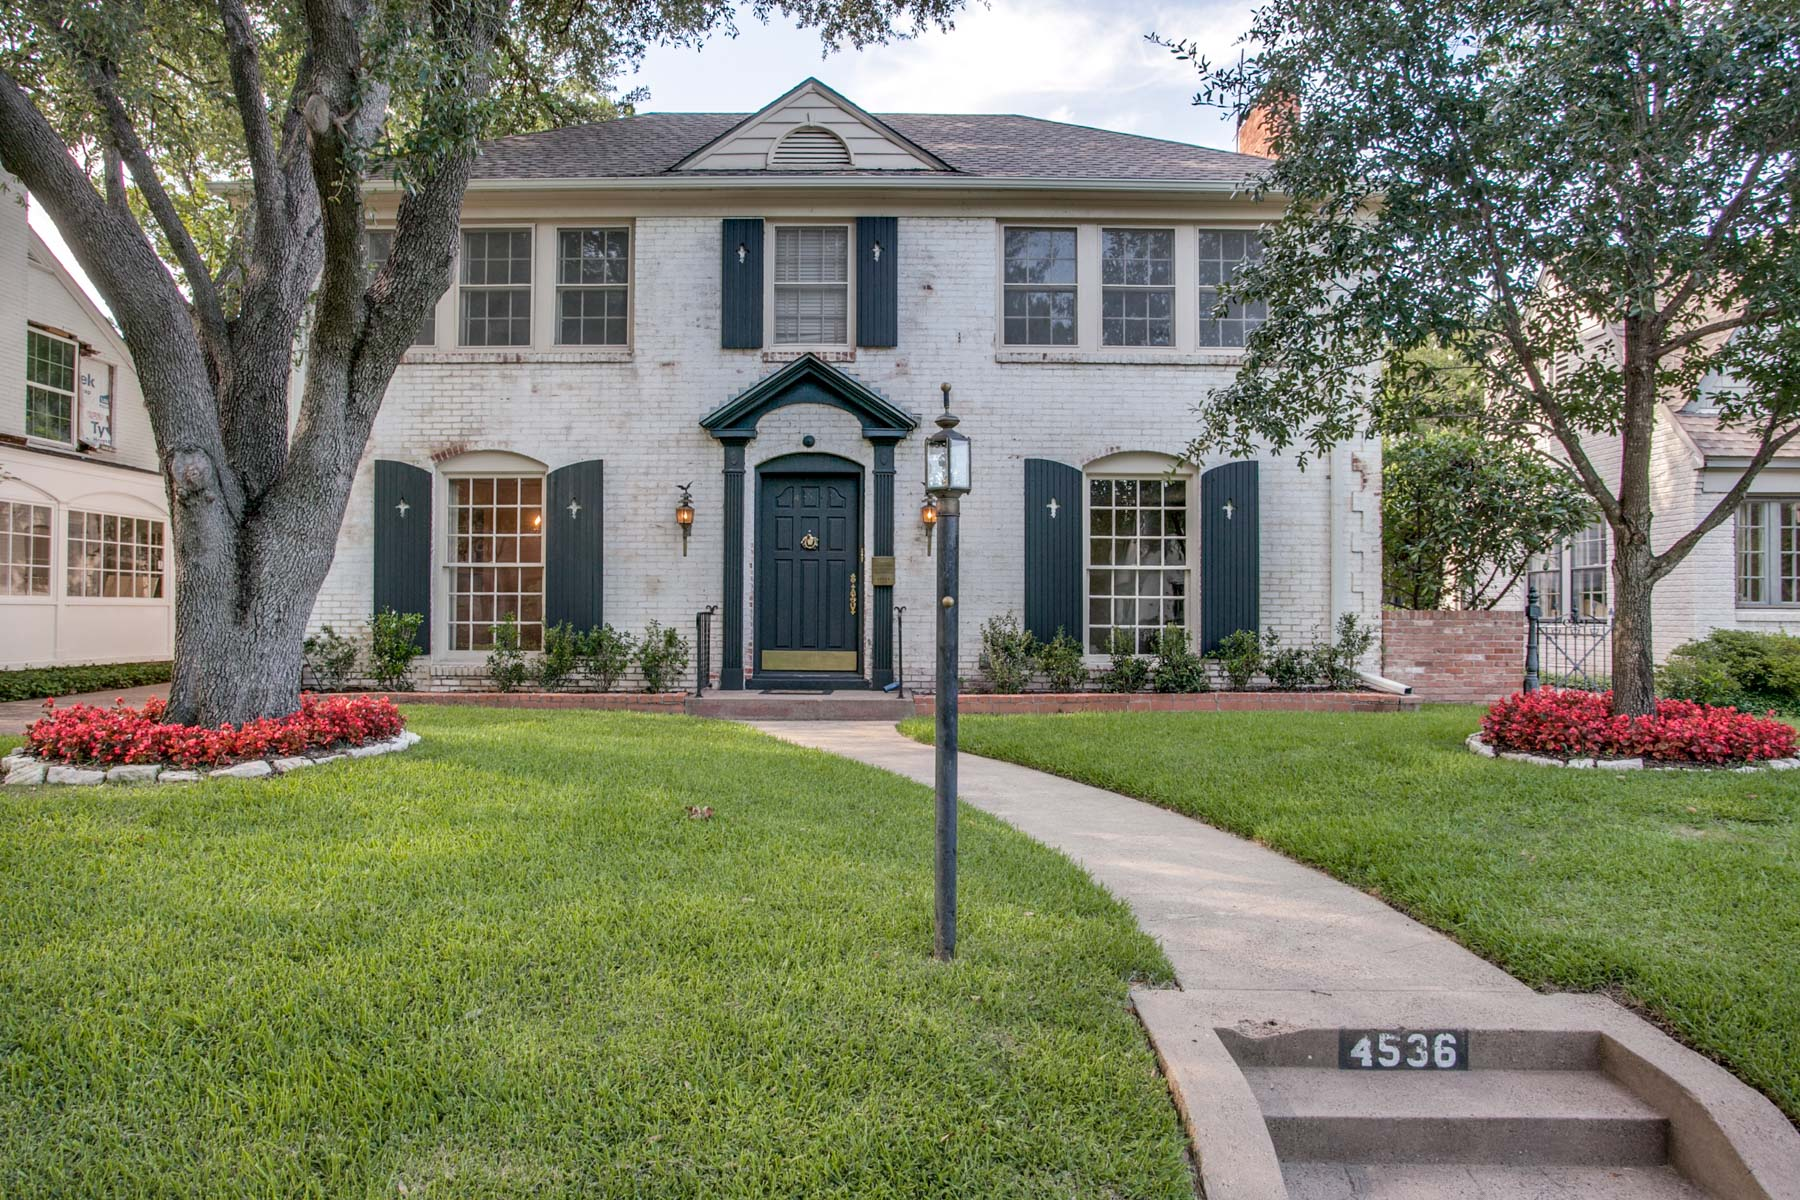 Single Family Home for Sale at Traditional Home with Nice Drive Up 4536 N Versailles Ave Highland Park, Texas 75205 United States